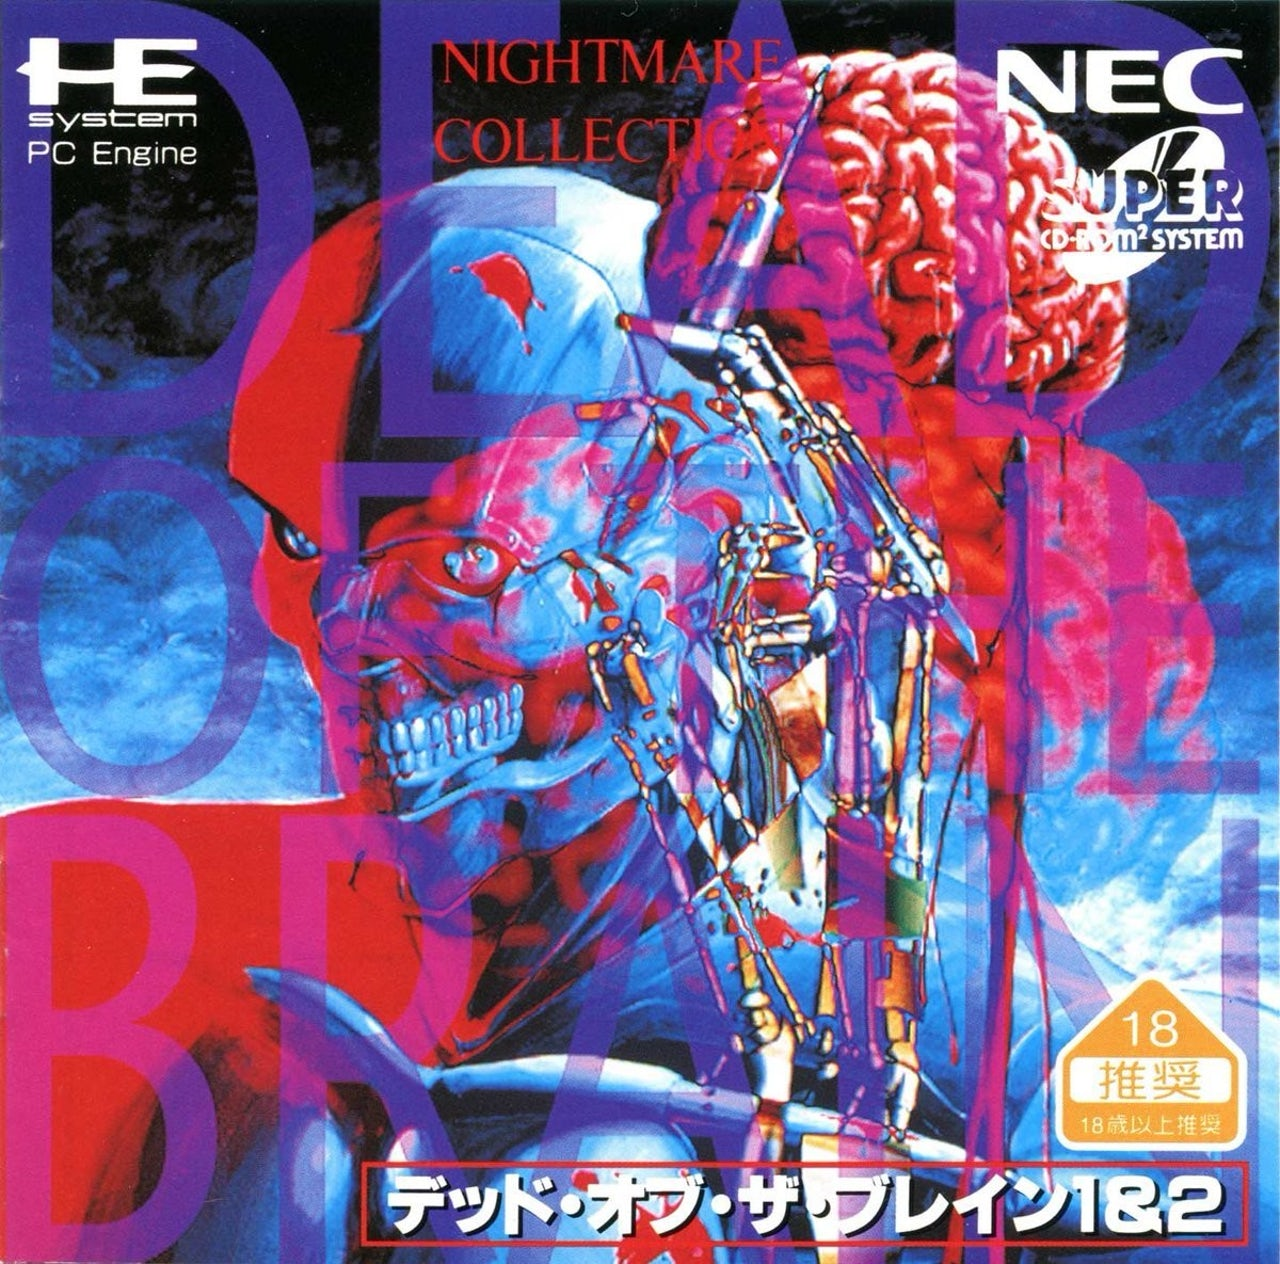 Nightmare Collection box art